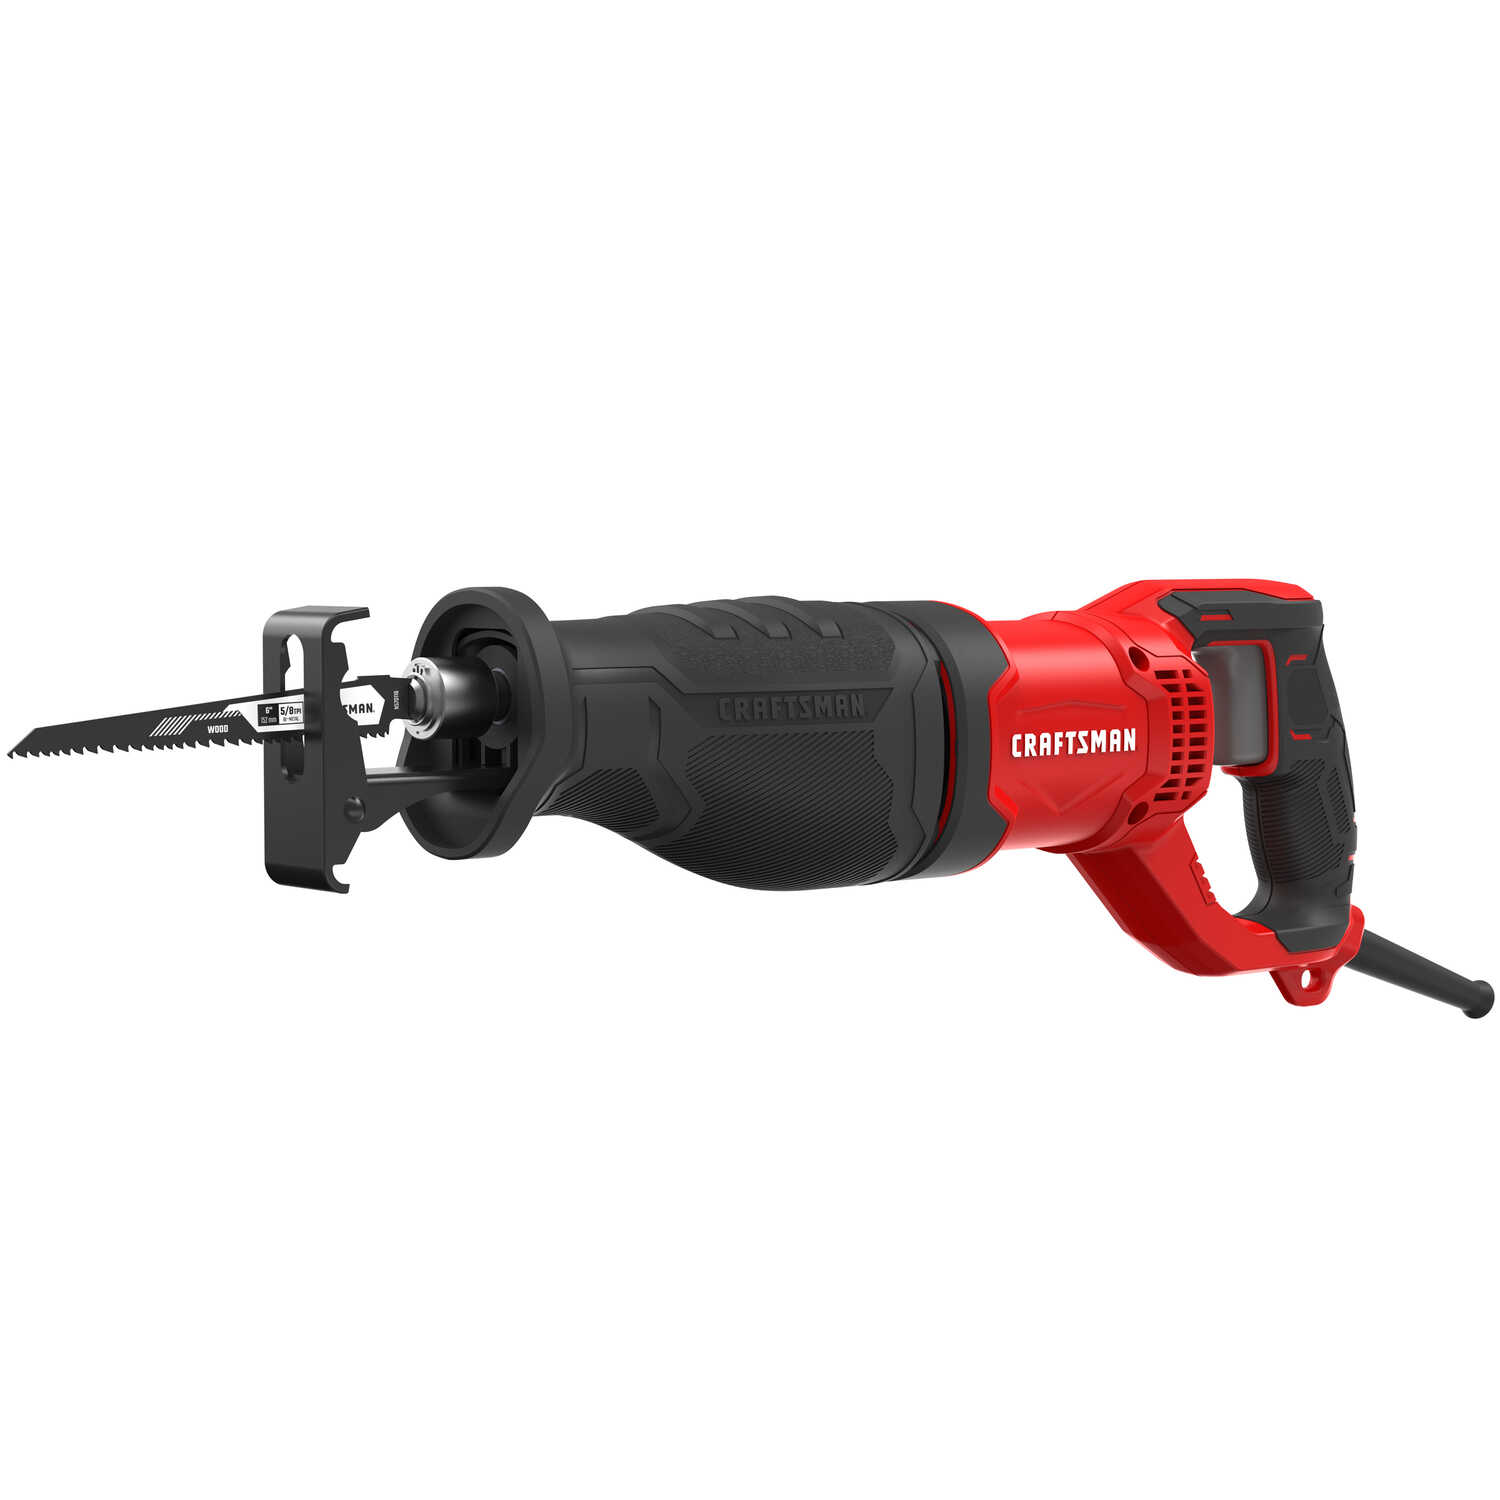 Craftsman  1-1/8 in. Corded  Reciprocating Saw  7.5 amps 3200 spm